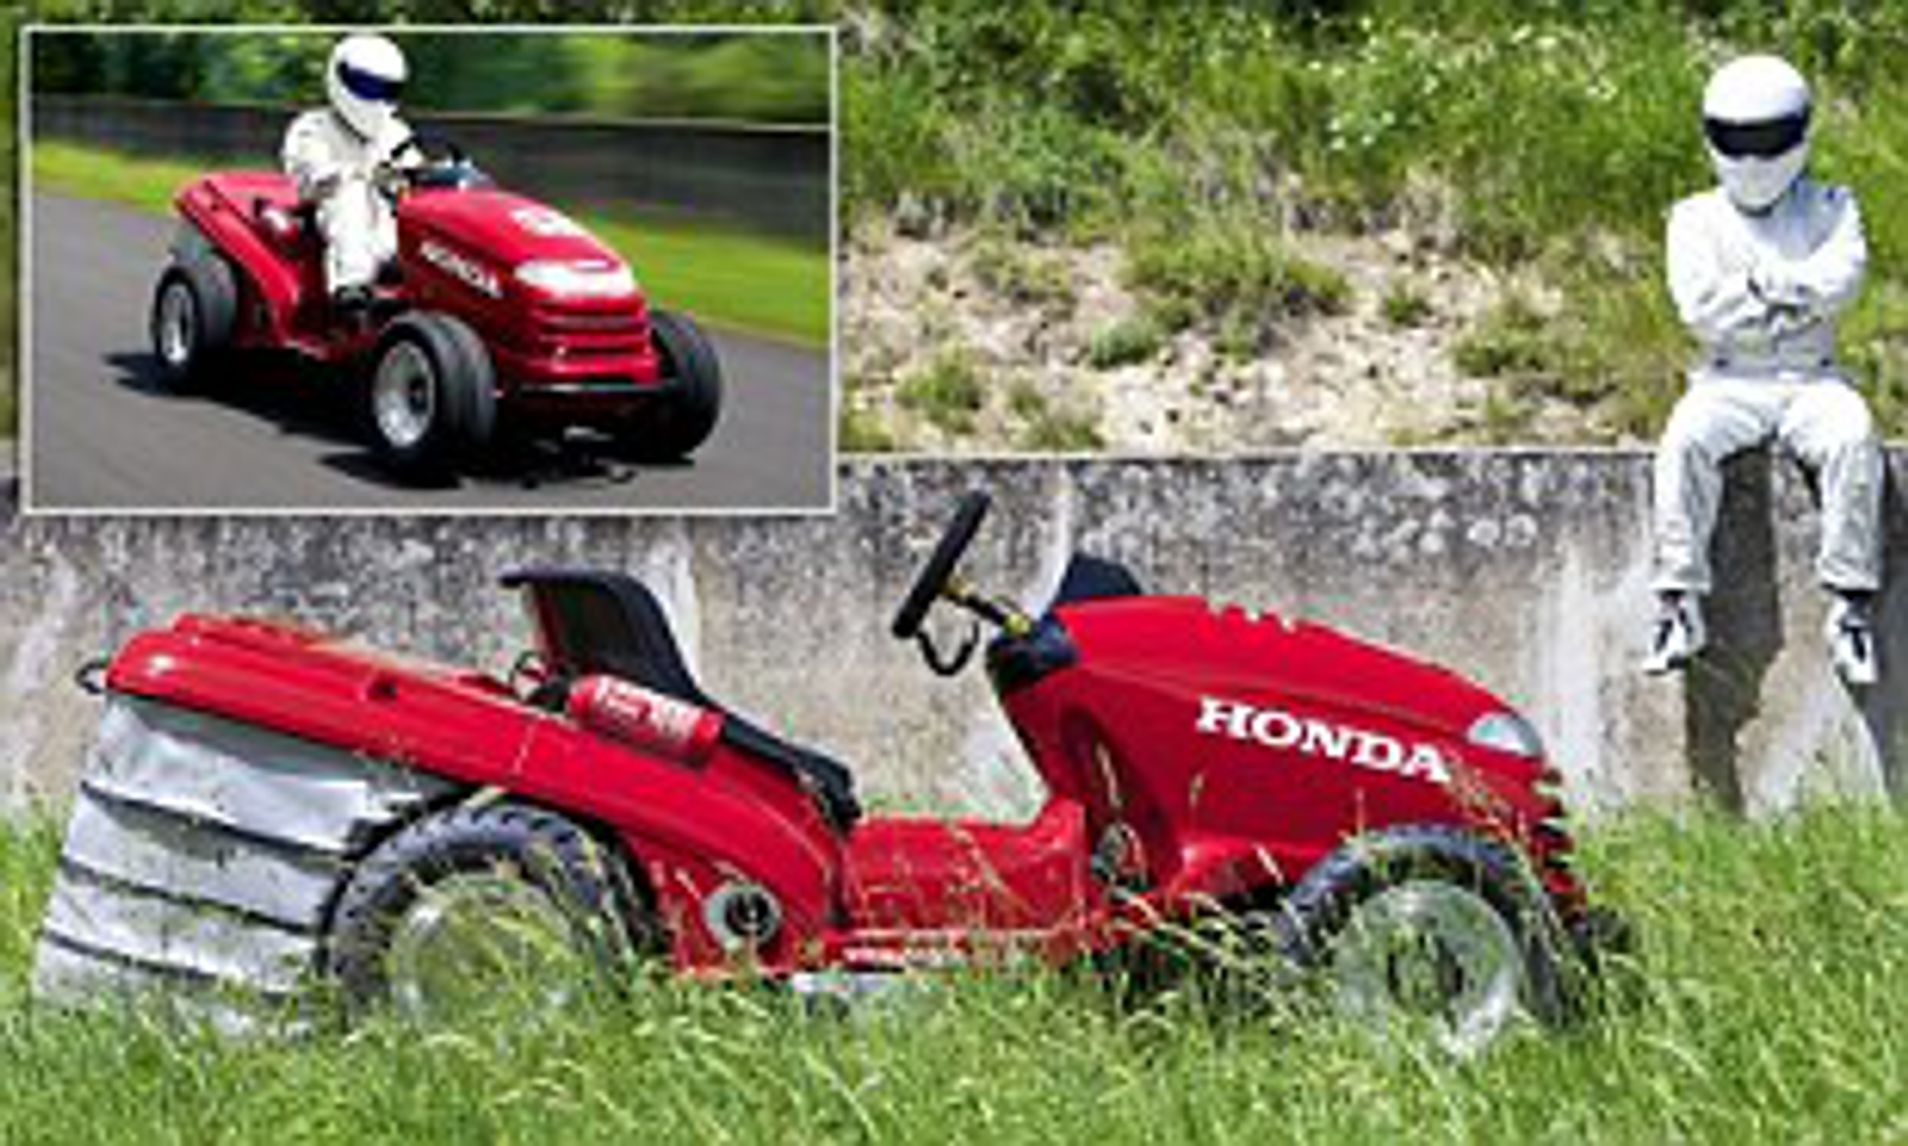 Fed Up With The Amount Of Time It Takes To Cut The Grass In Your Garden Maybe You Need One Of These 130mph Lawn Mowers Daily Mail Online - Morrisons Garden Furniture Clearance